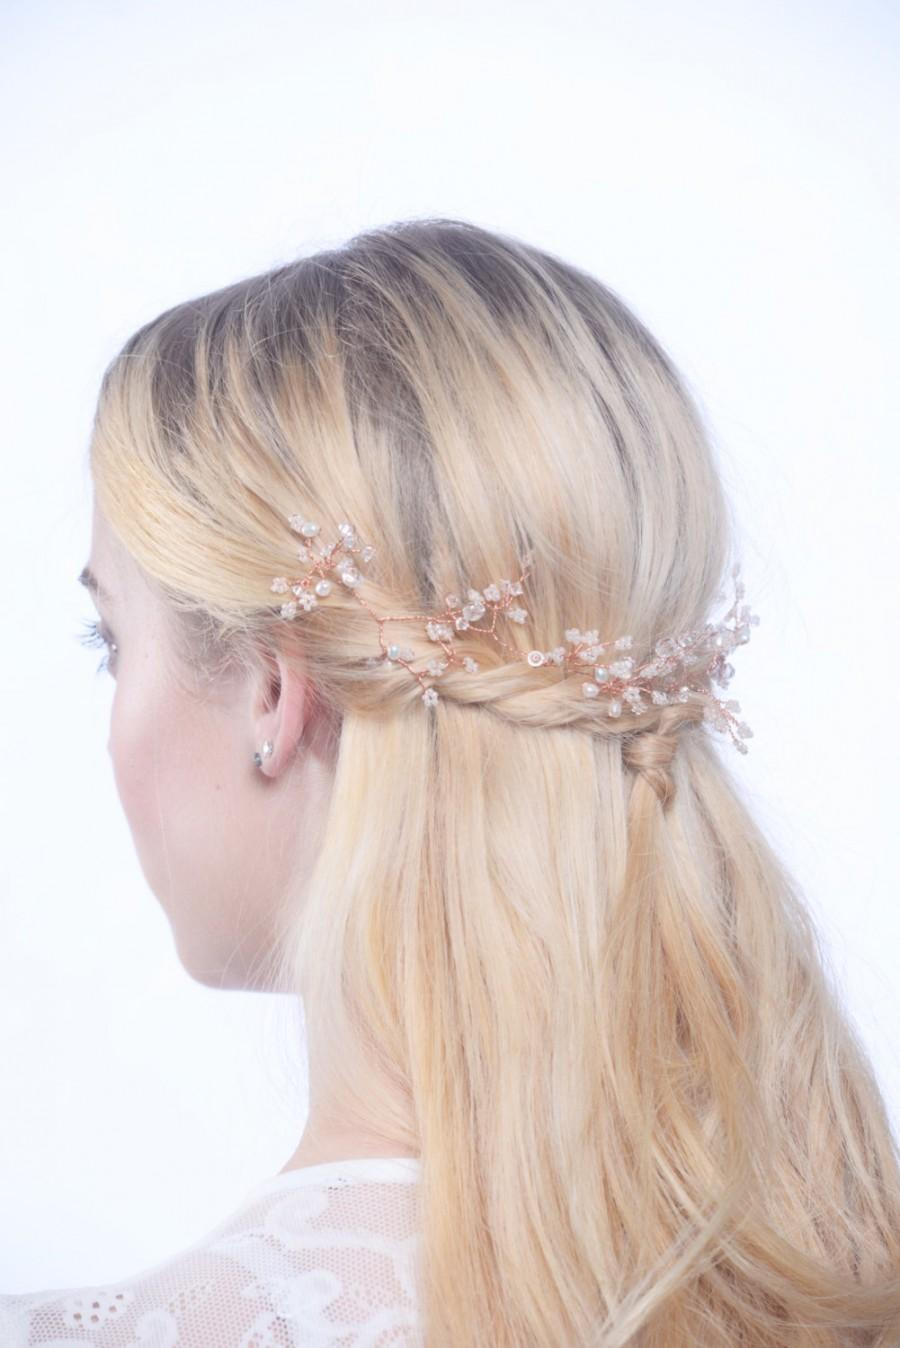 Mariage - rose gold hair vine, rose gold headpiece, bridal headpiece, hair vine, rustic hair vine, bridal hair vine, wedding headband, bridal wreath